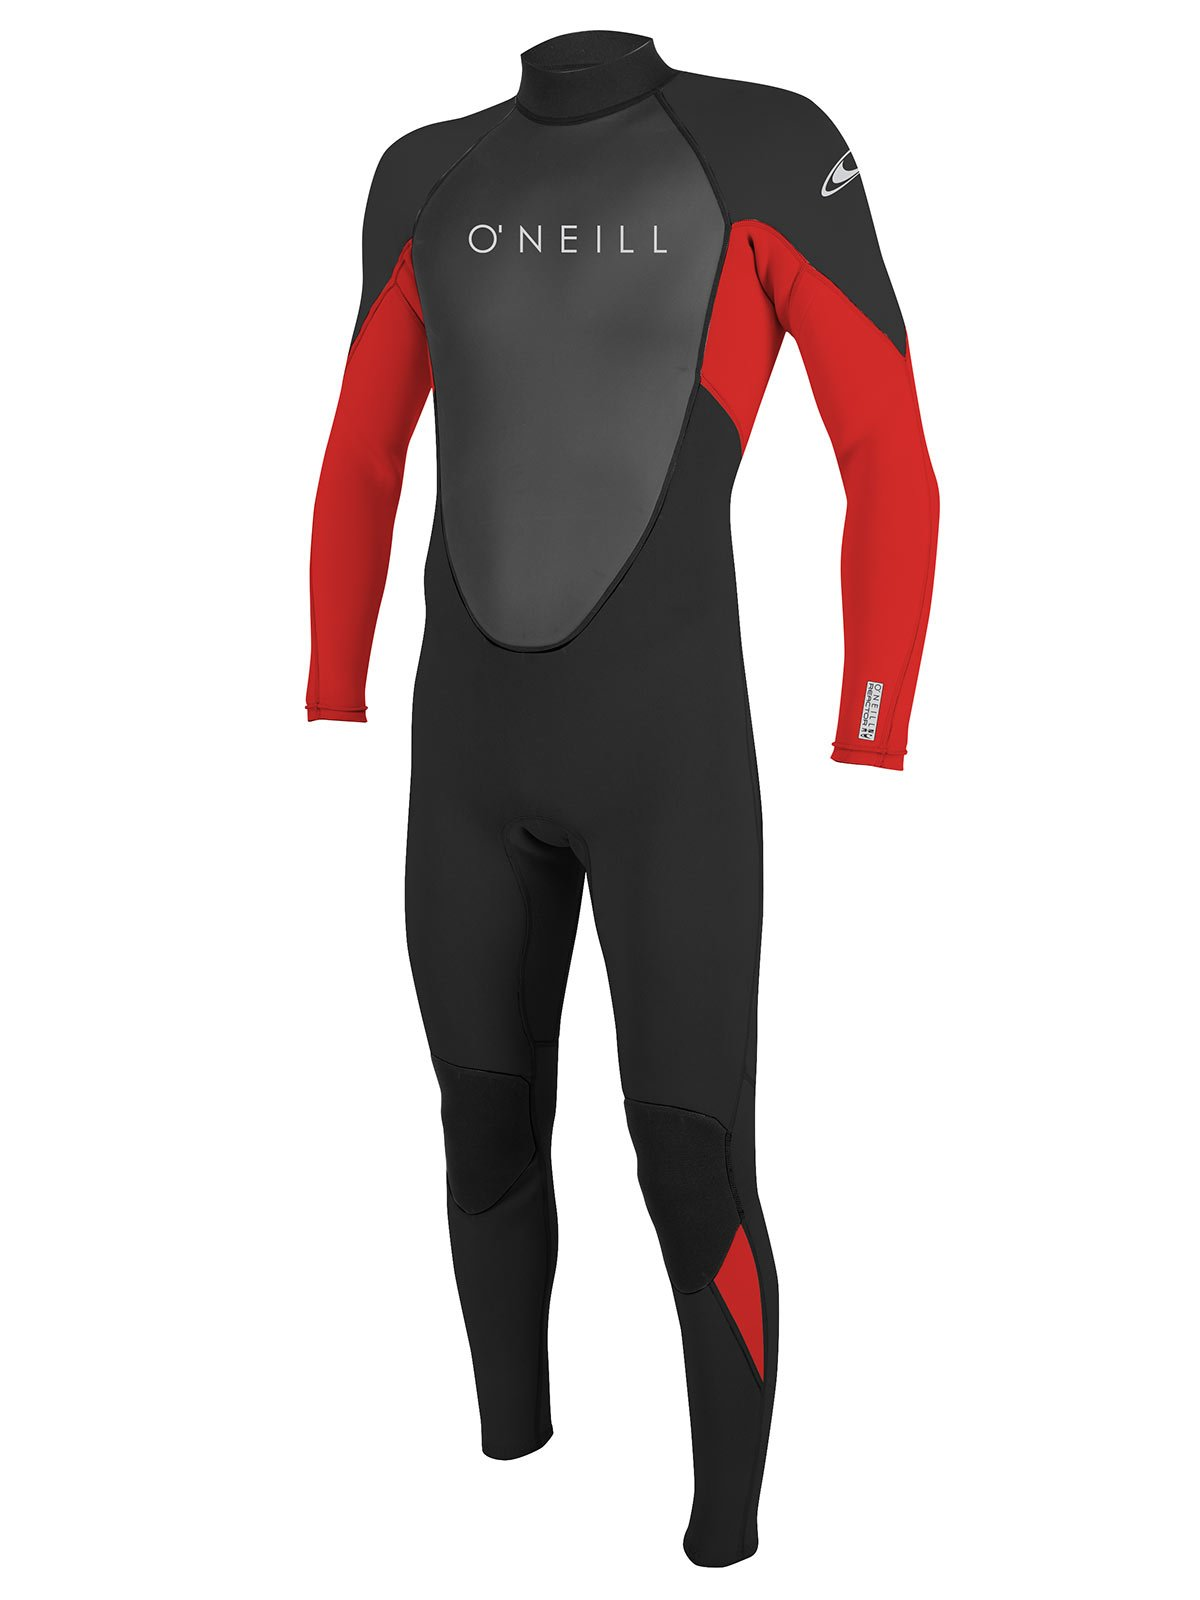 O'Neill Reactor 2 Kids Full Wetsuit 12 Black/red (5044IS) by O'Neill Wetsuits